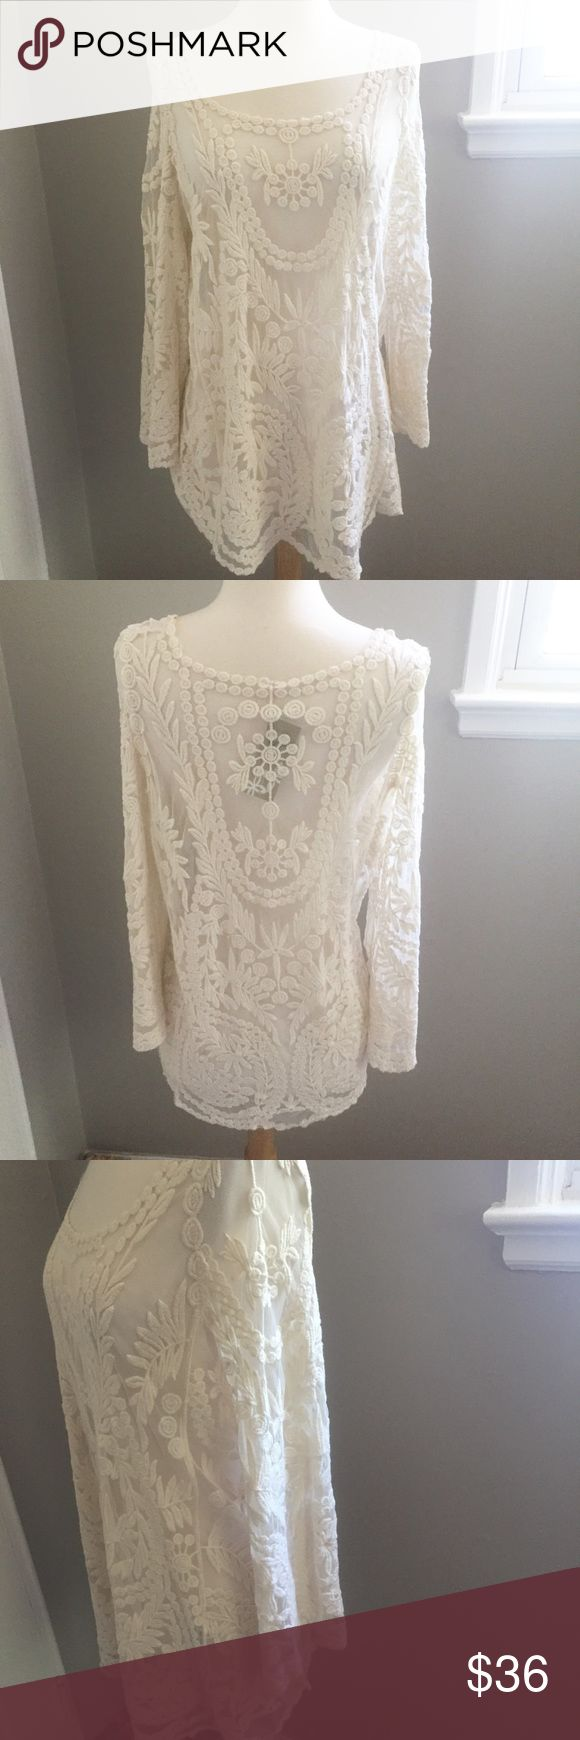 """NWT Lace Blouse NWT/ Feel free to ask any questions, make a reasonable offer, or add to a bundle or 15% off 2 or more items! 😃 Measurements Bust: Almost 18"""" Length: 27"""" Tops Blouses"""